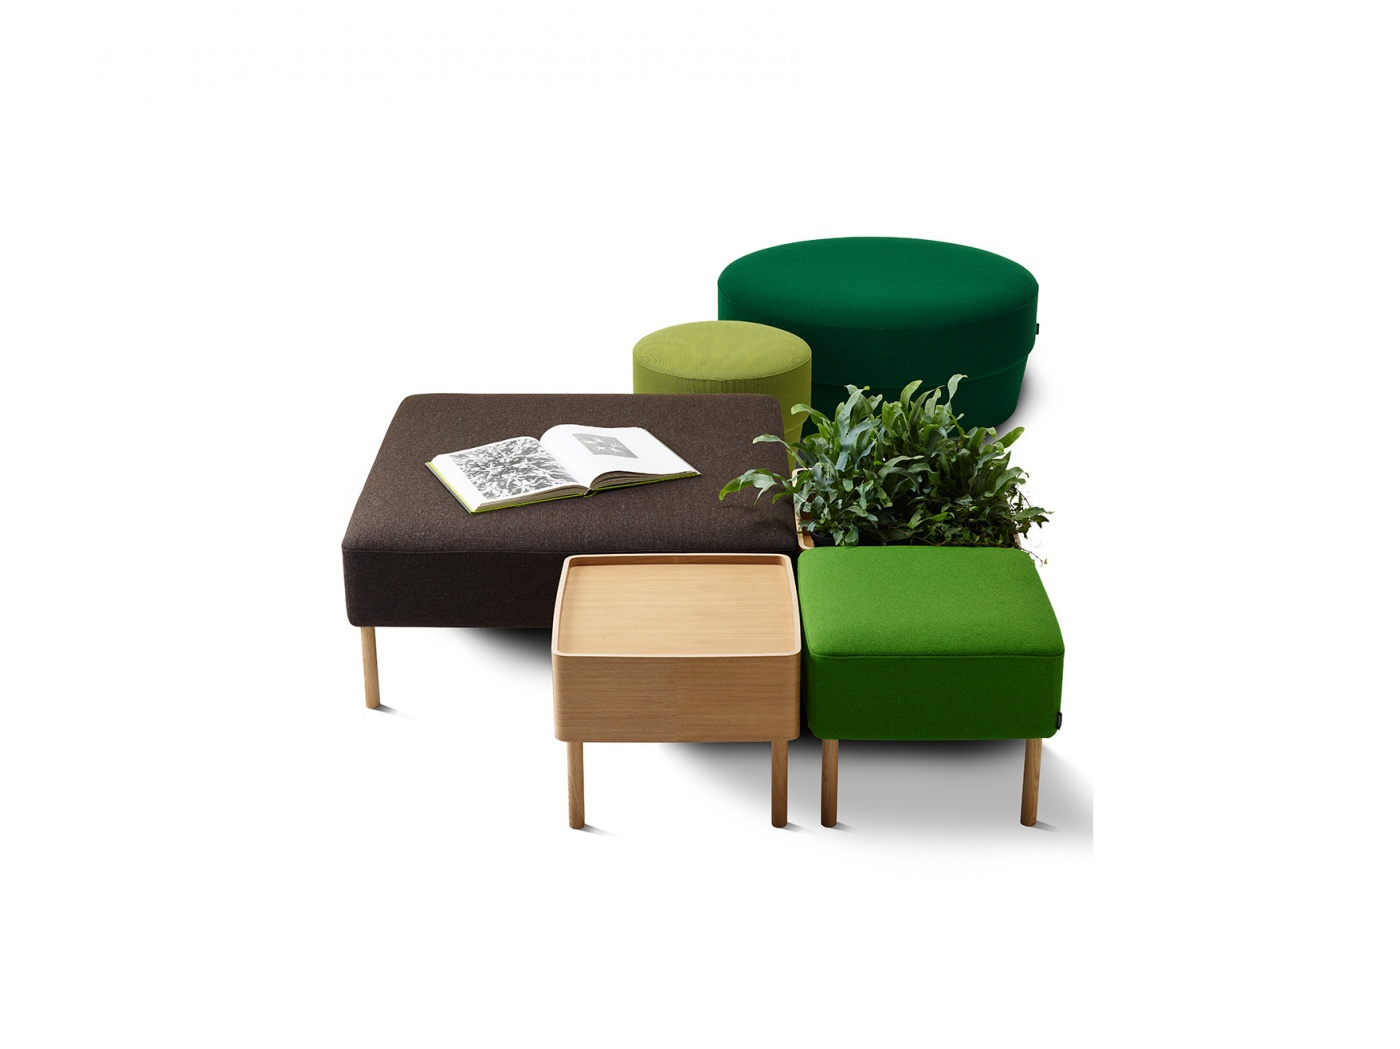 Modular bench with modules for seating, storage and plants, an ideal solution for the flexible workspace design of the future.